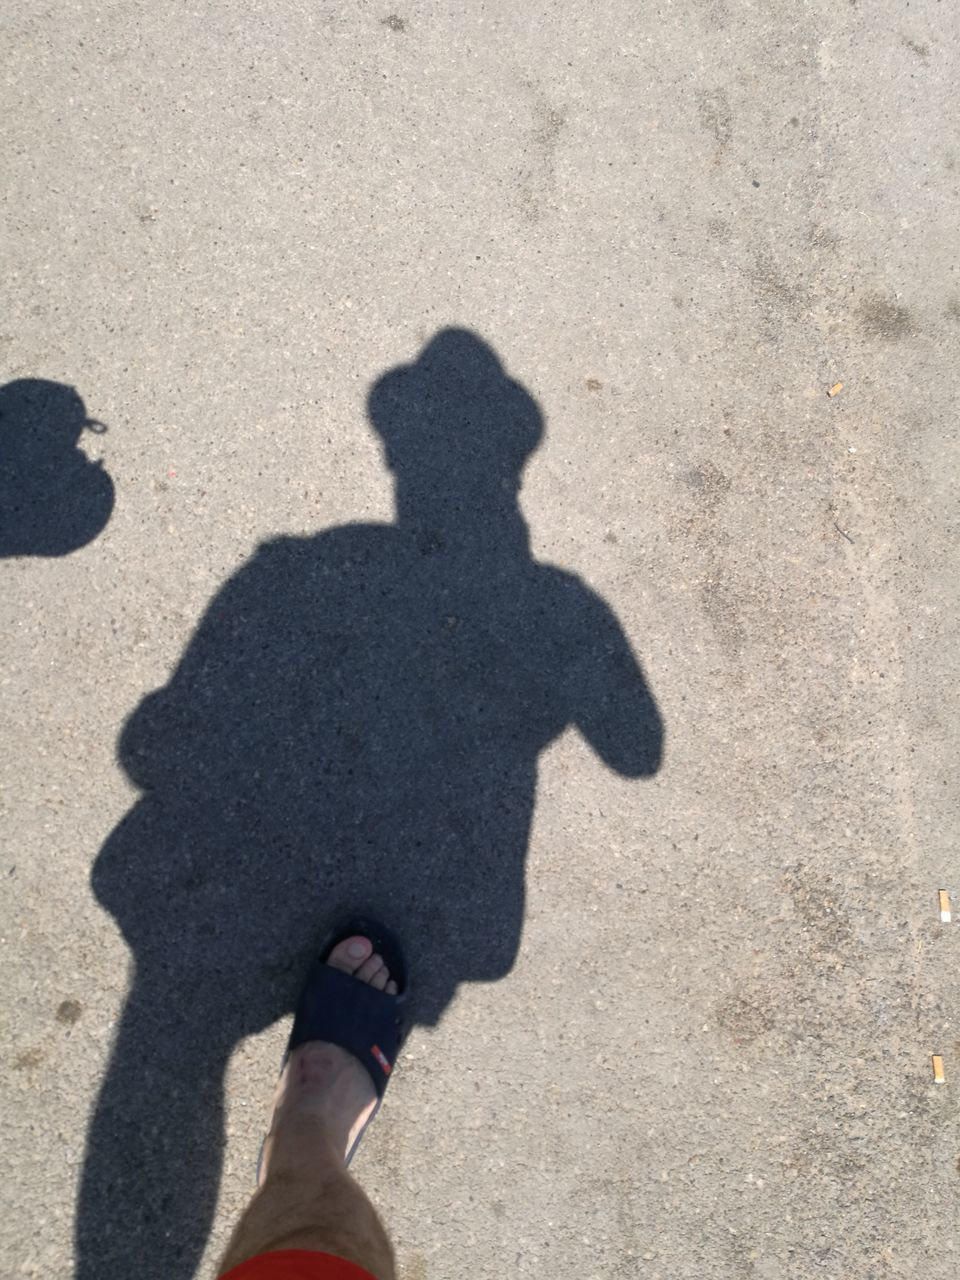 shadow, one person, sunlight, focus on shadow, one man only, holding, day, real people, outdoors, people, adults only, human body part, only men, lifestyles, human hand, adult, standing, low section, men